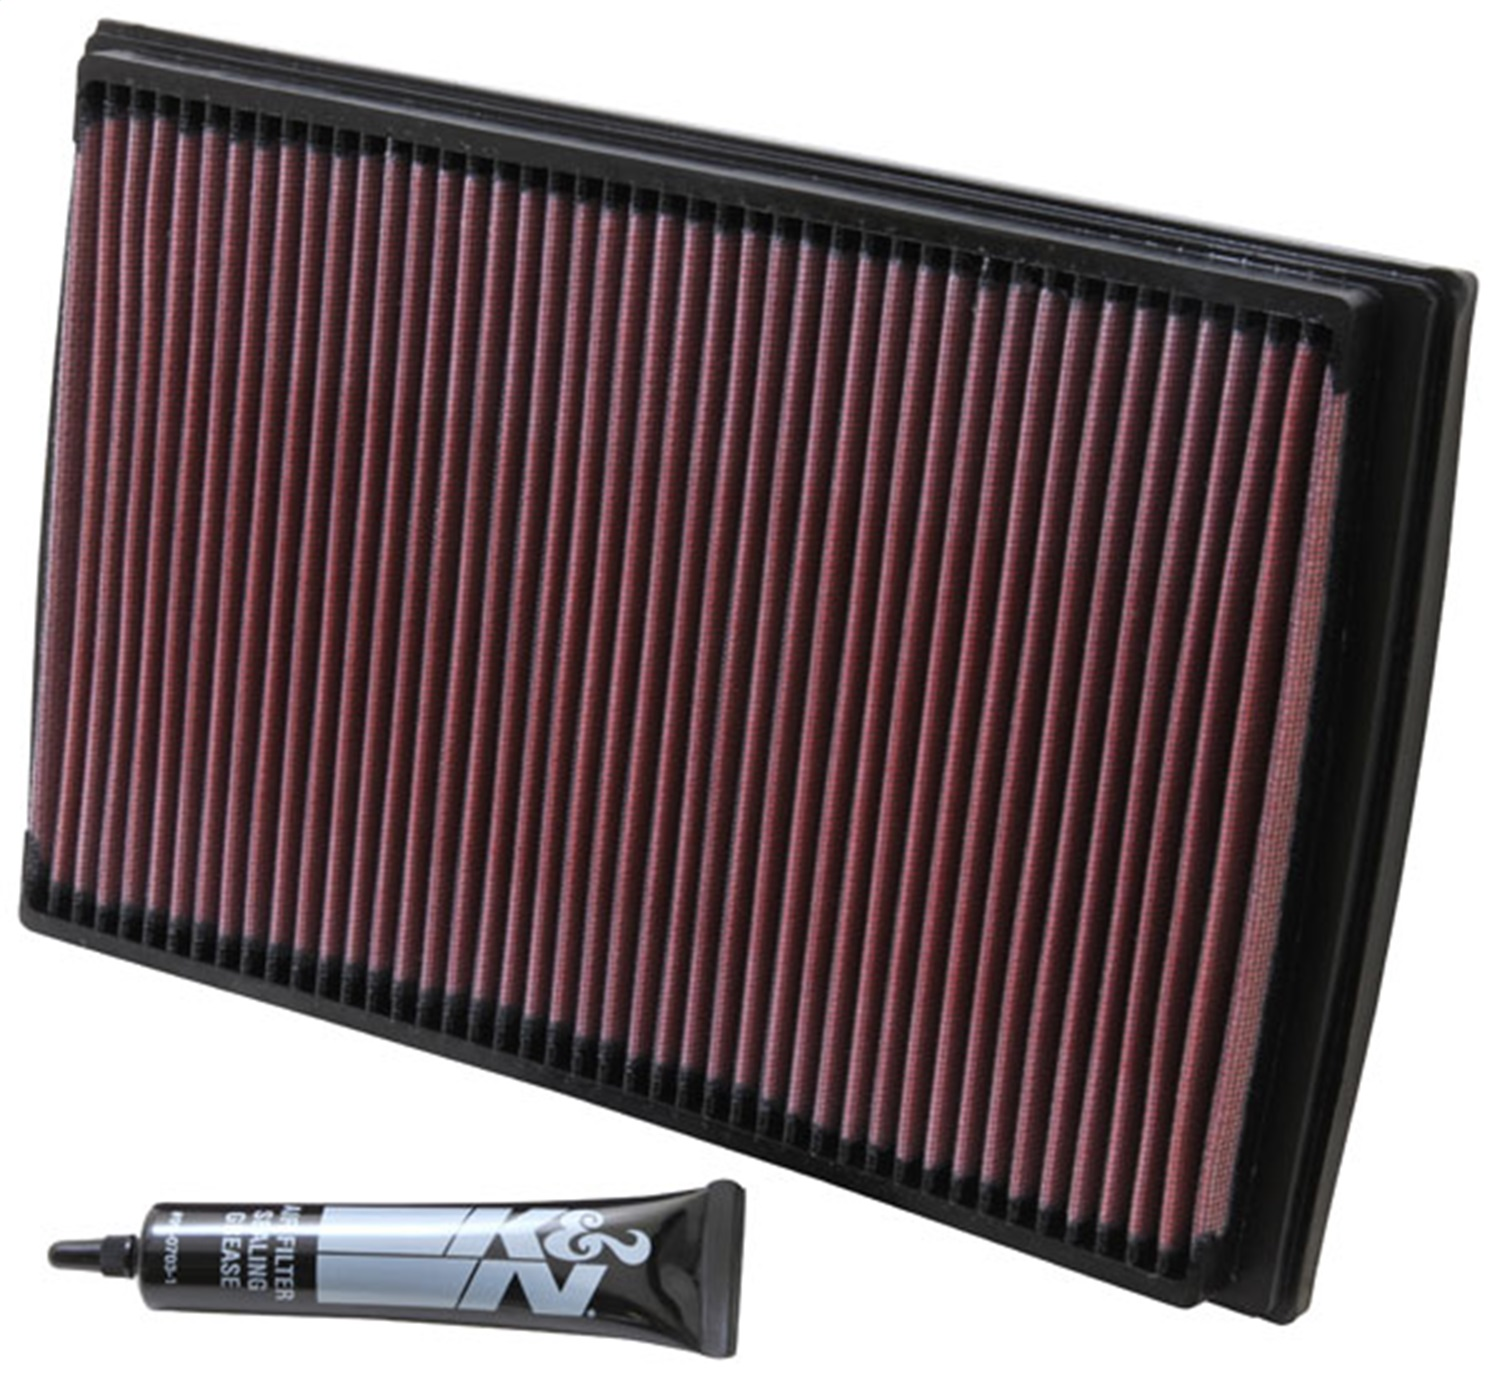 K&N Filters 33-2176 Air Filter Fits 01-08 S60 S80 V70 XC70 33-2176